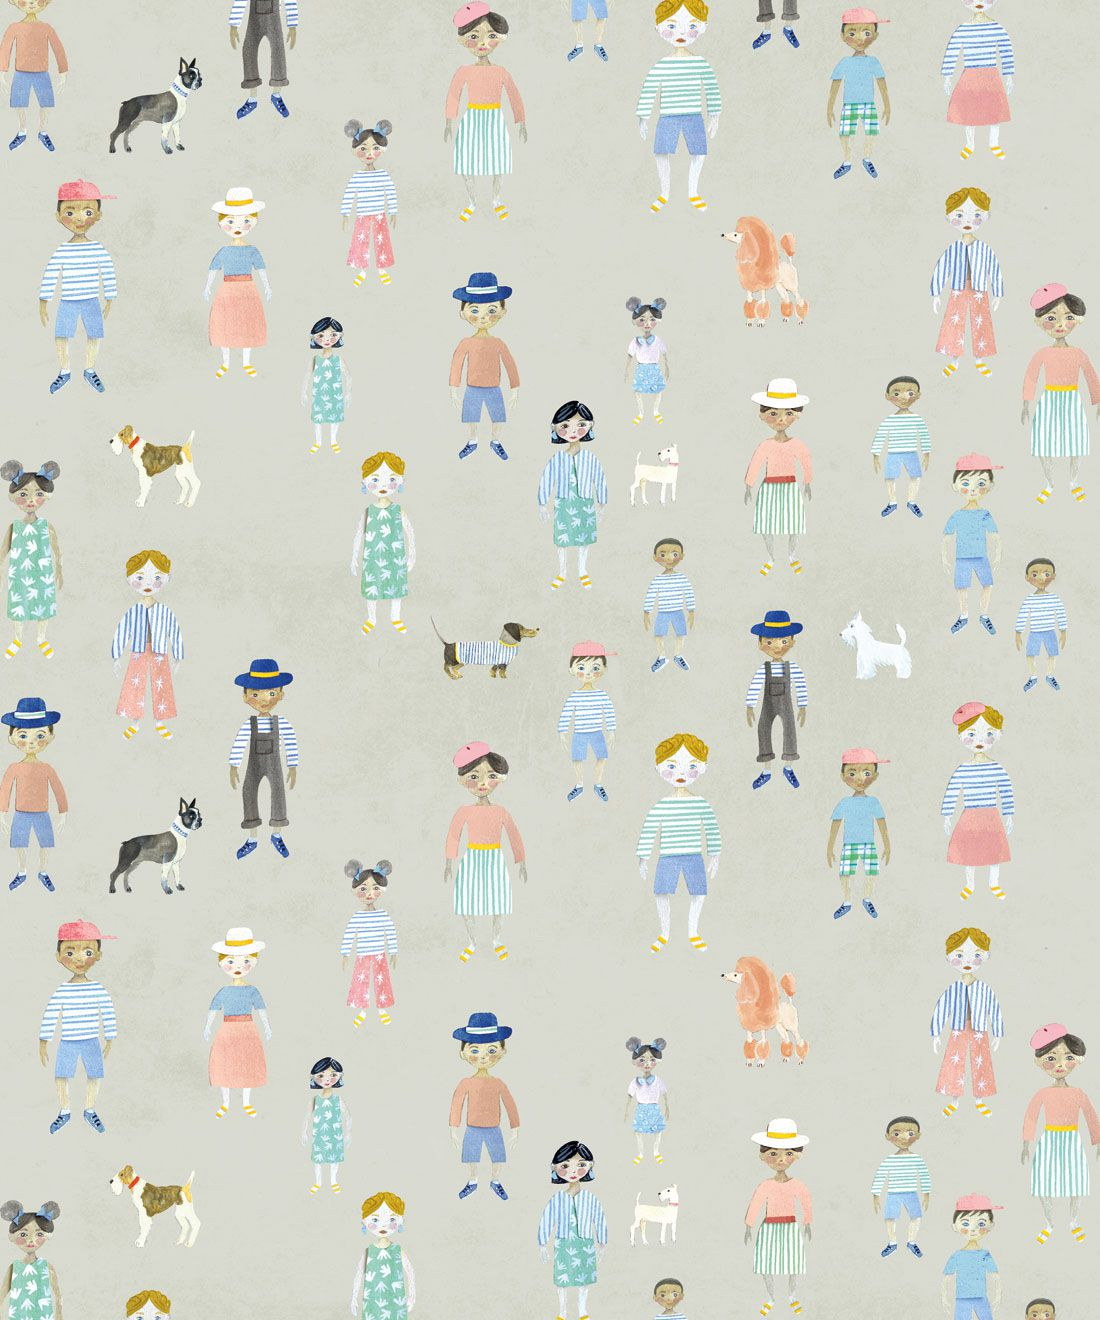 Paper Dolls Wallpaper